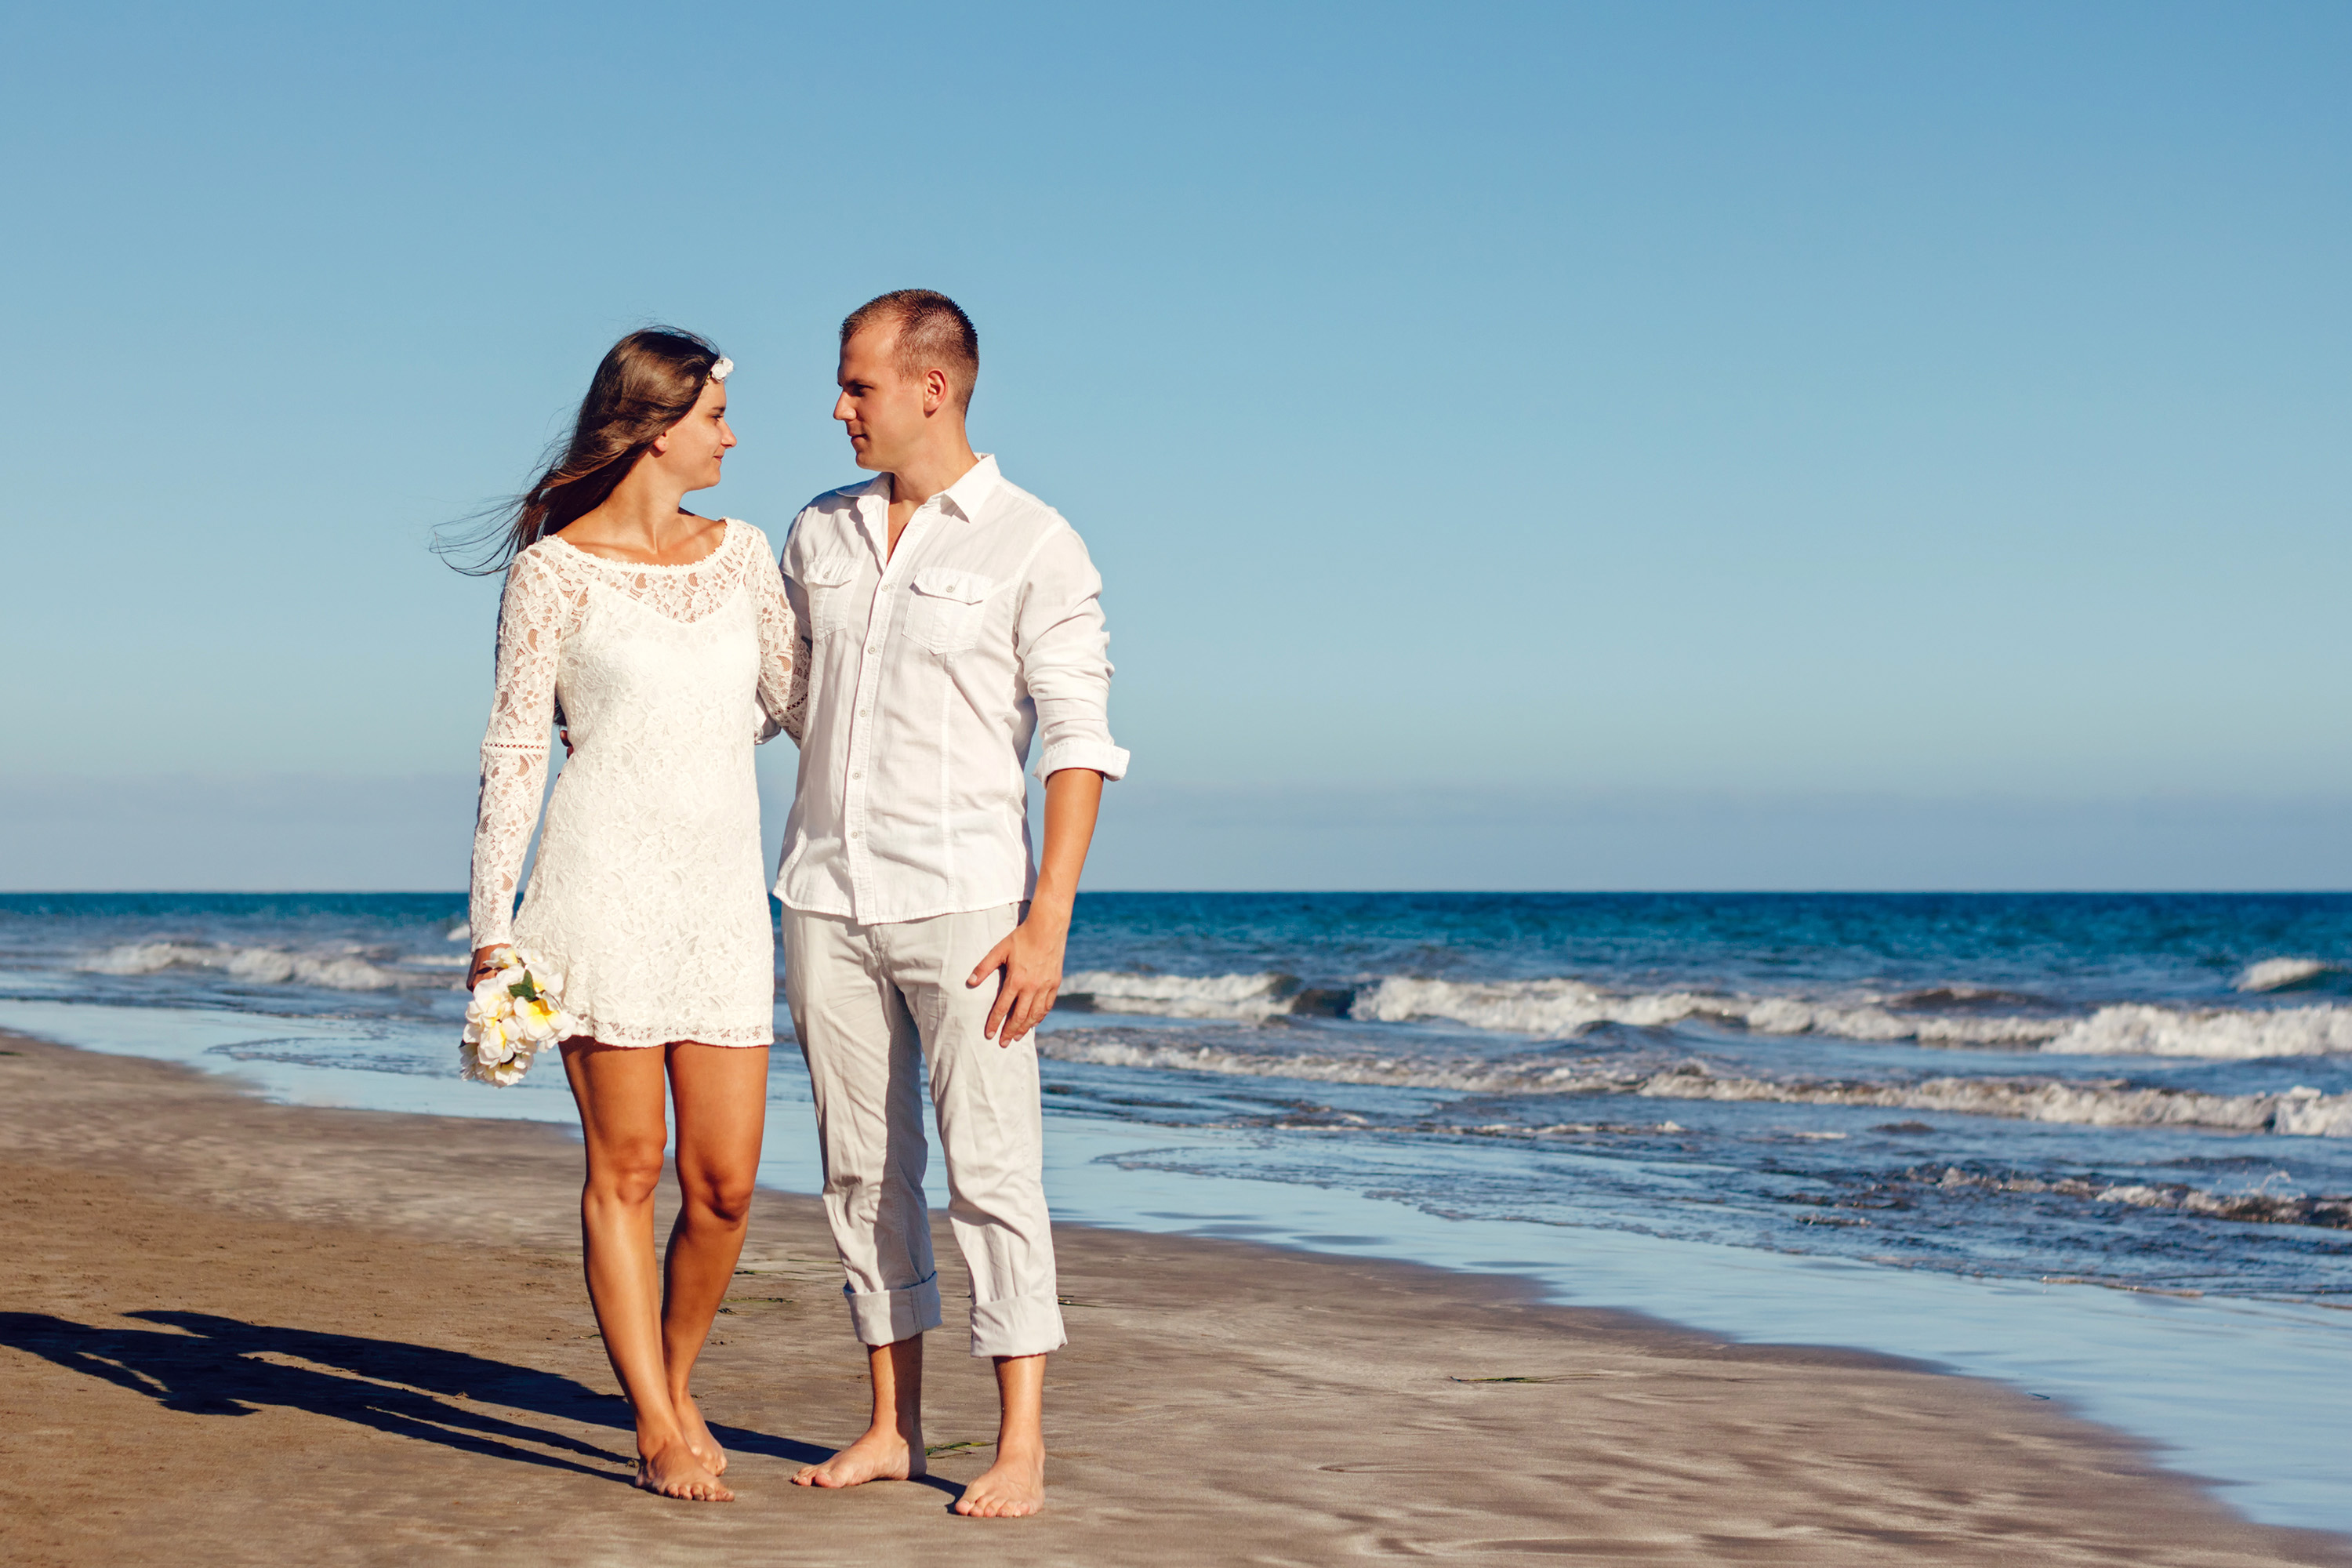 Couple in white clothes on the seaside image - Free stock photo - Public Domain photo - CC0 Images